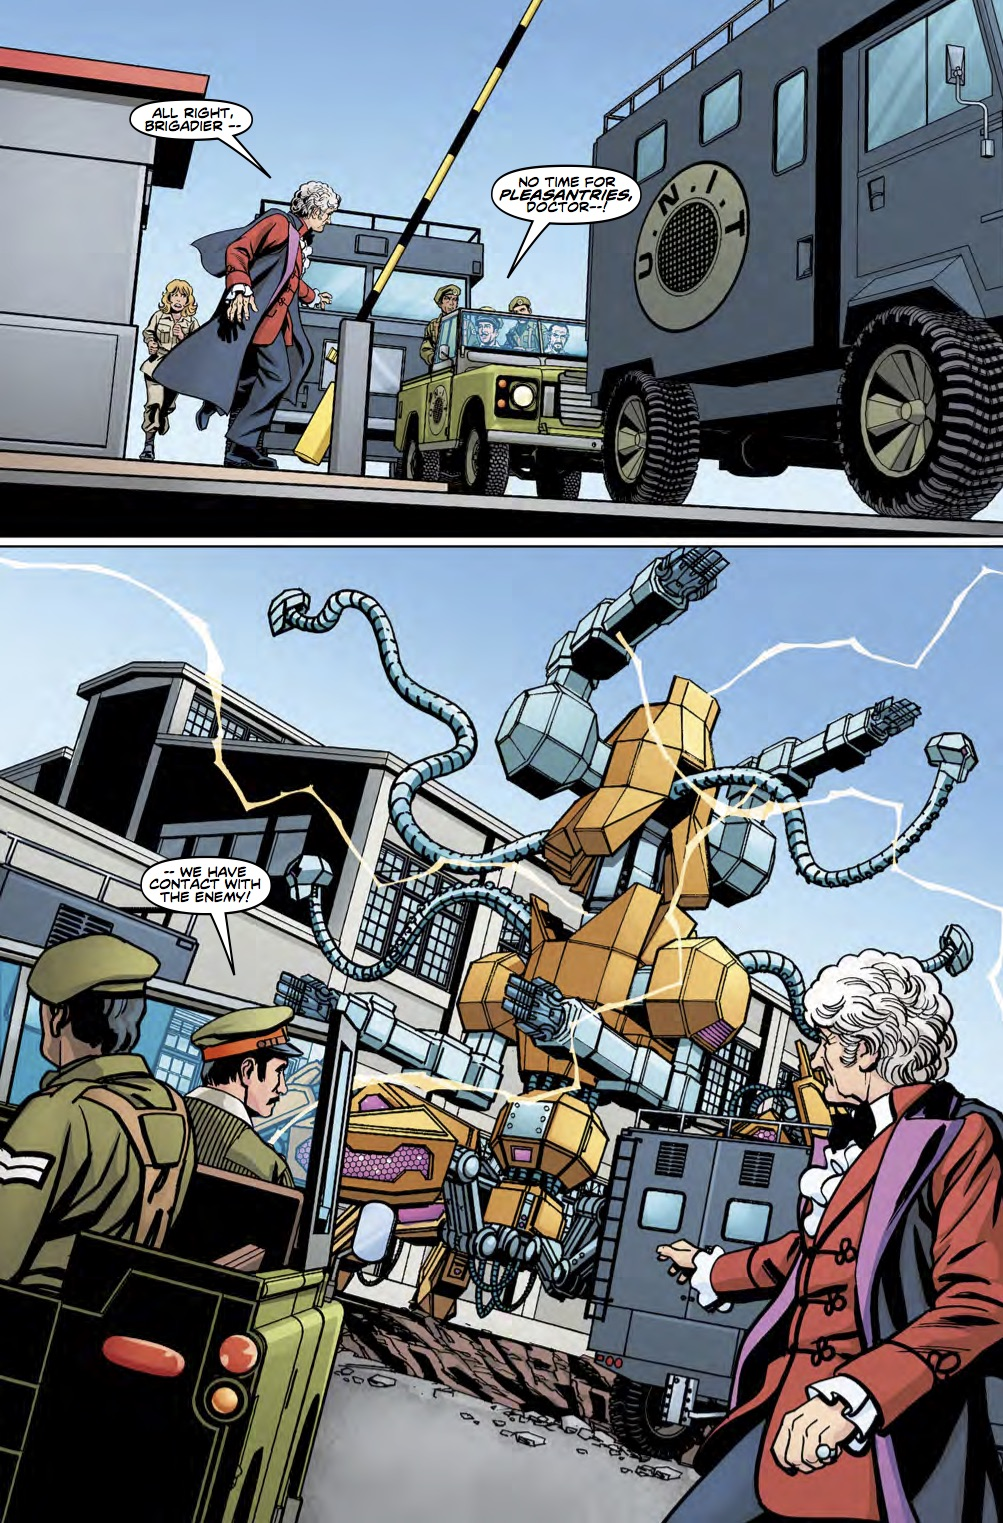 DOCTOR WHO THIRD DOCTOR #4 Page_2 (Credit: Titan)